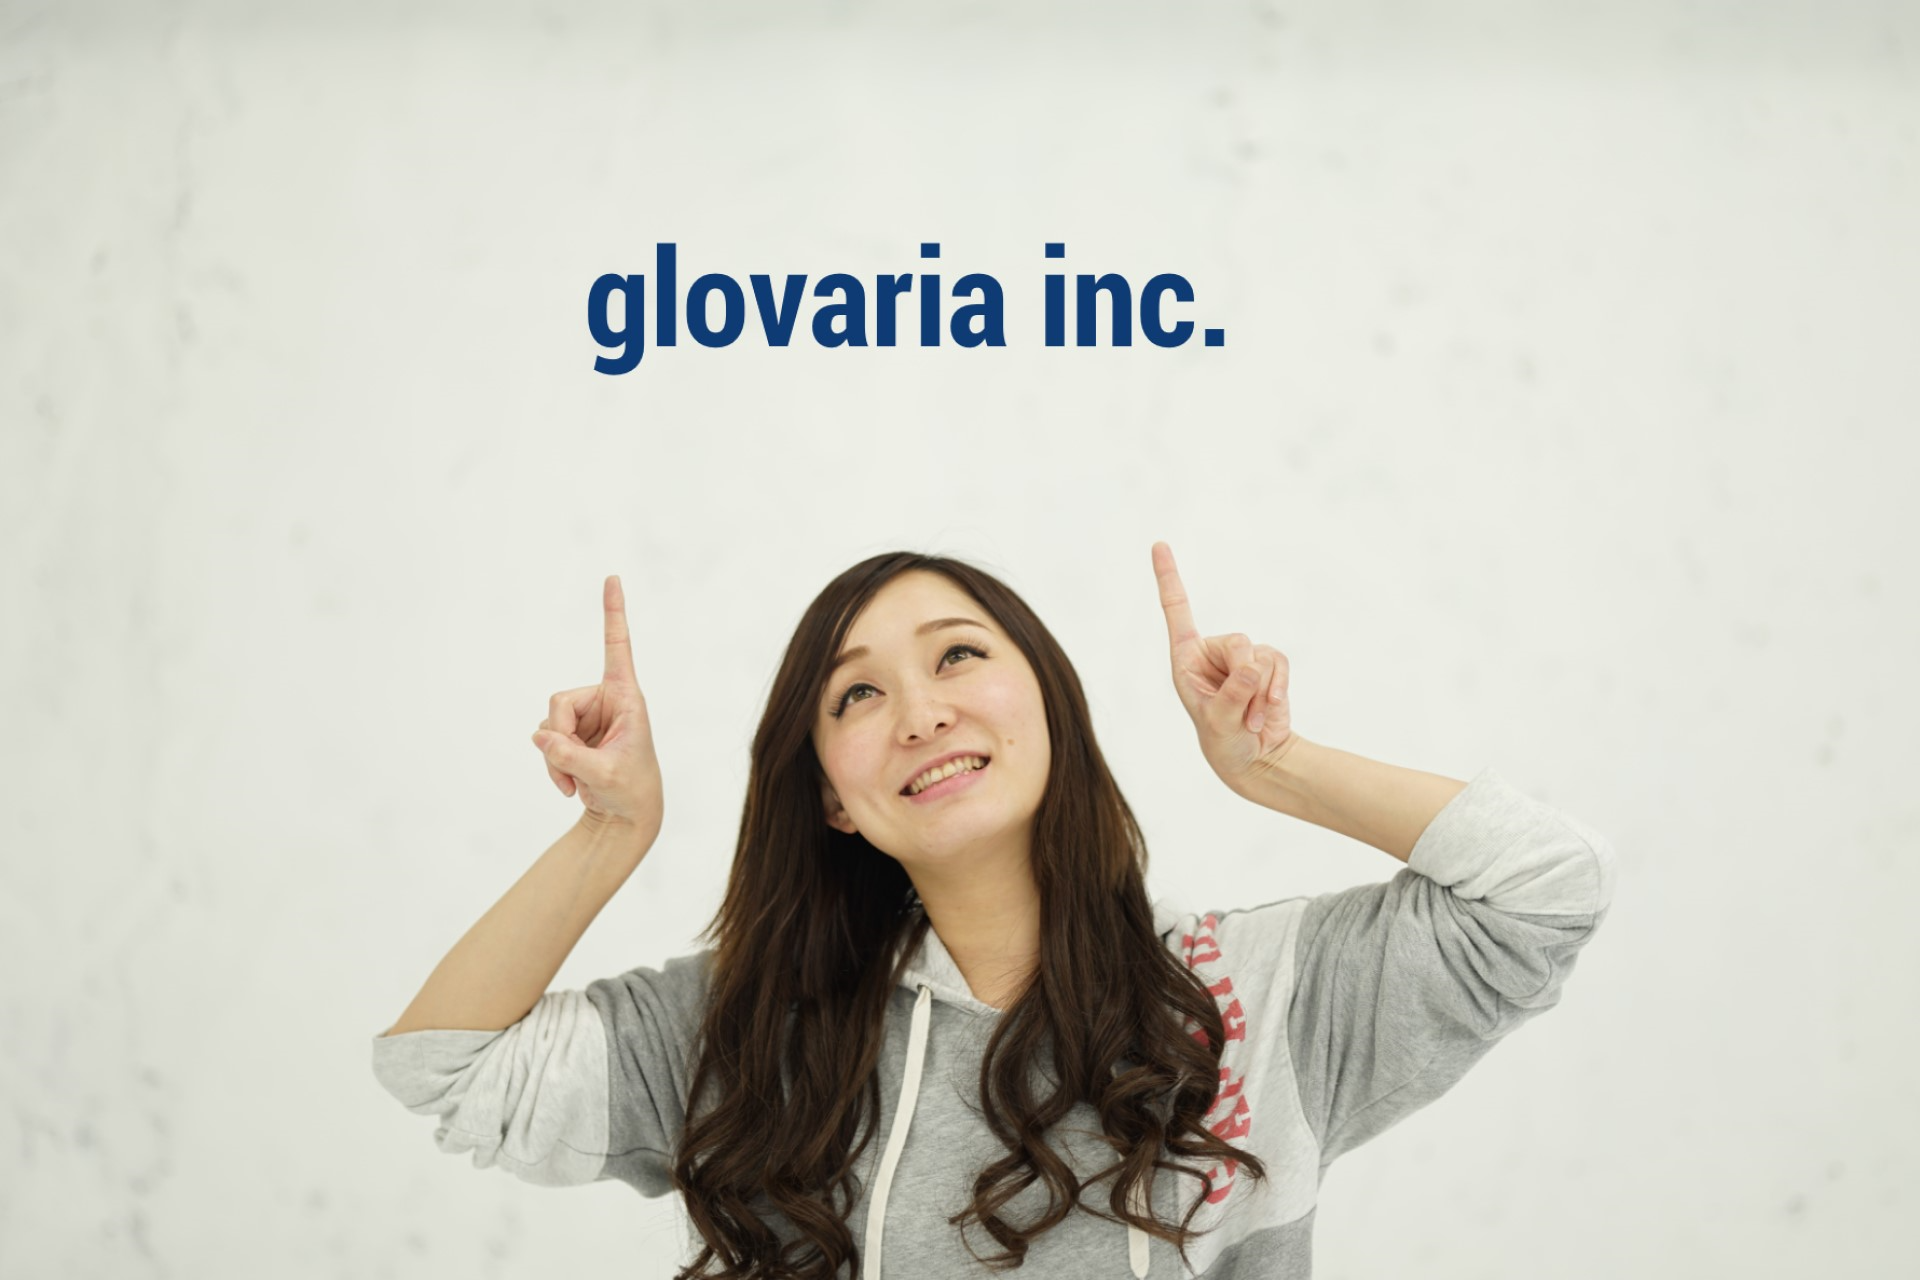 glovaria inc.